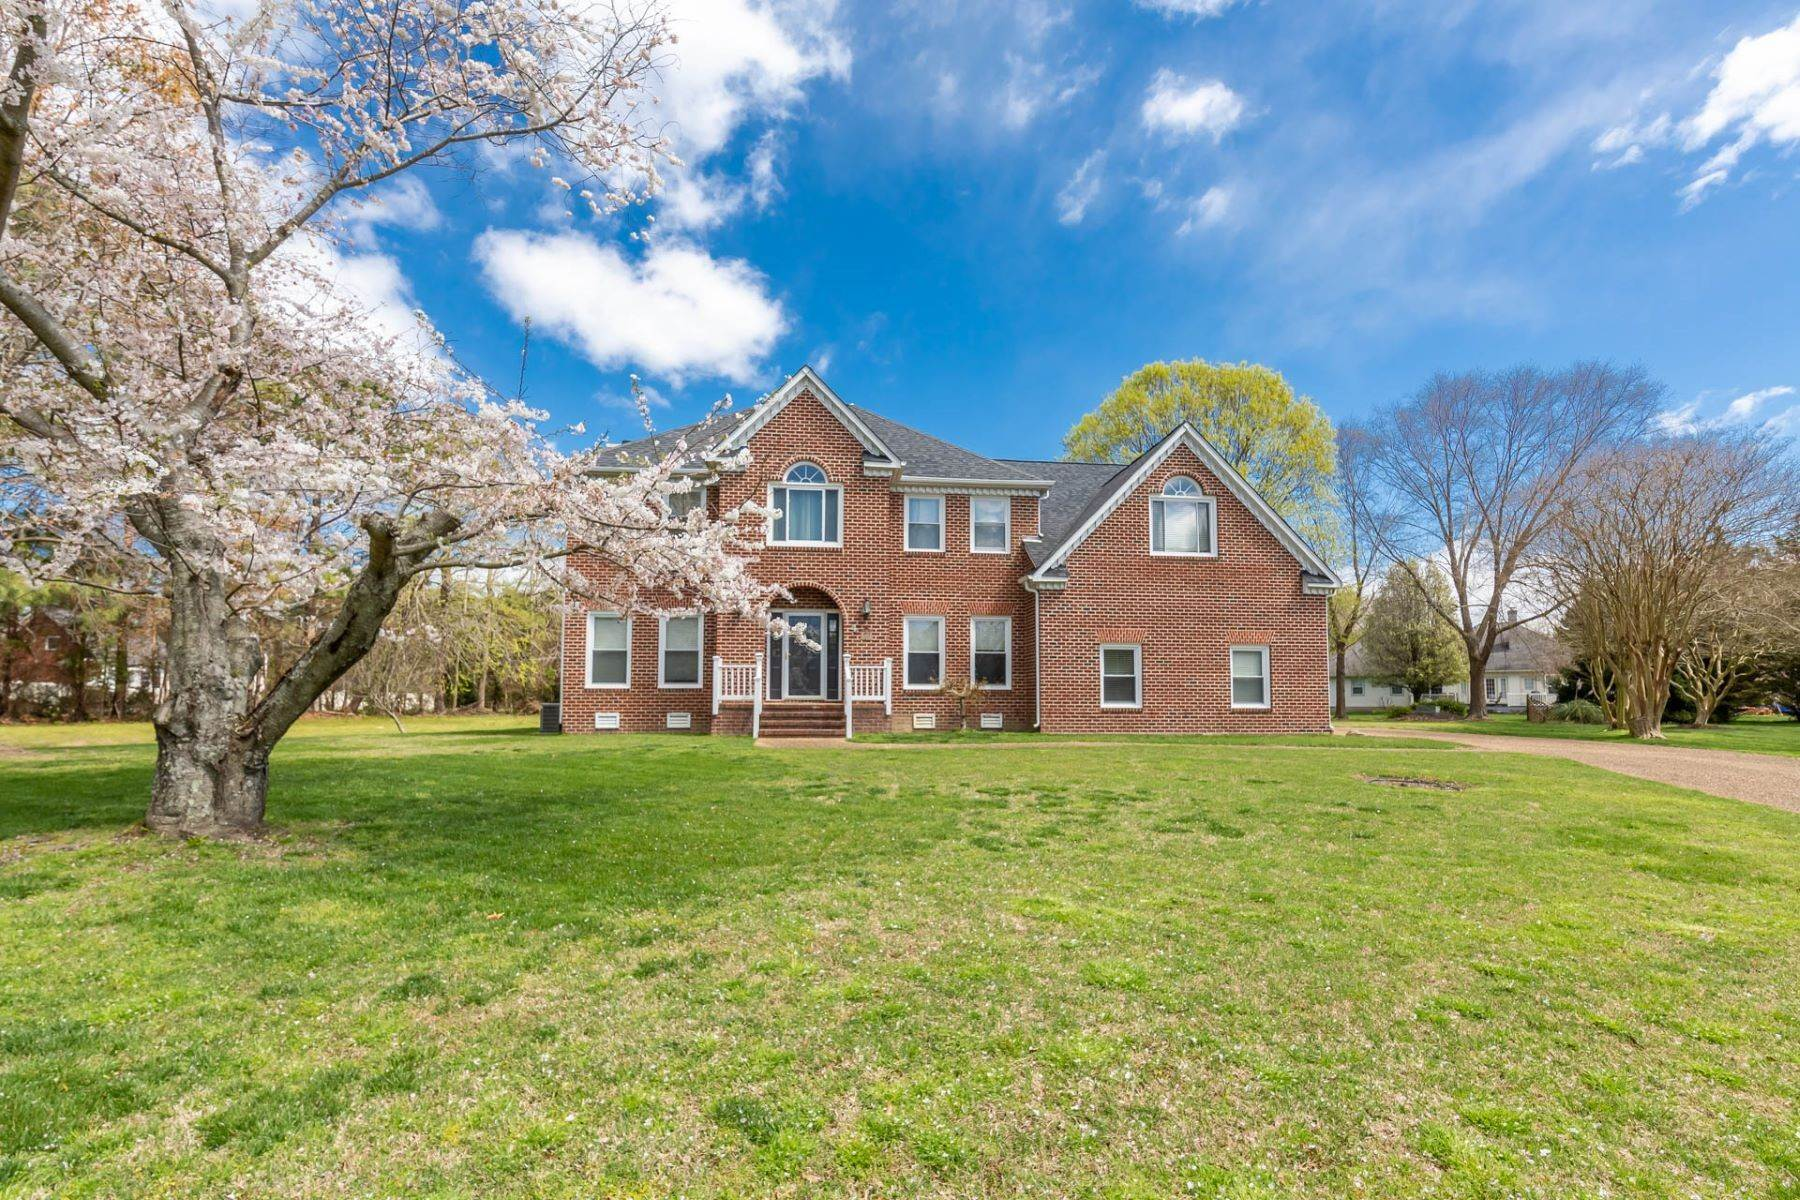 40. Single Family Homes for Sale at Valmoore Estates 4 Tennis Circle Poquoson, Virginia 23662 United States